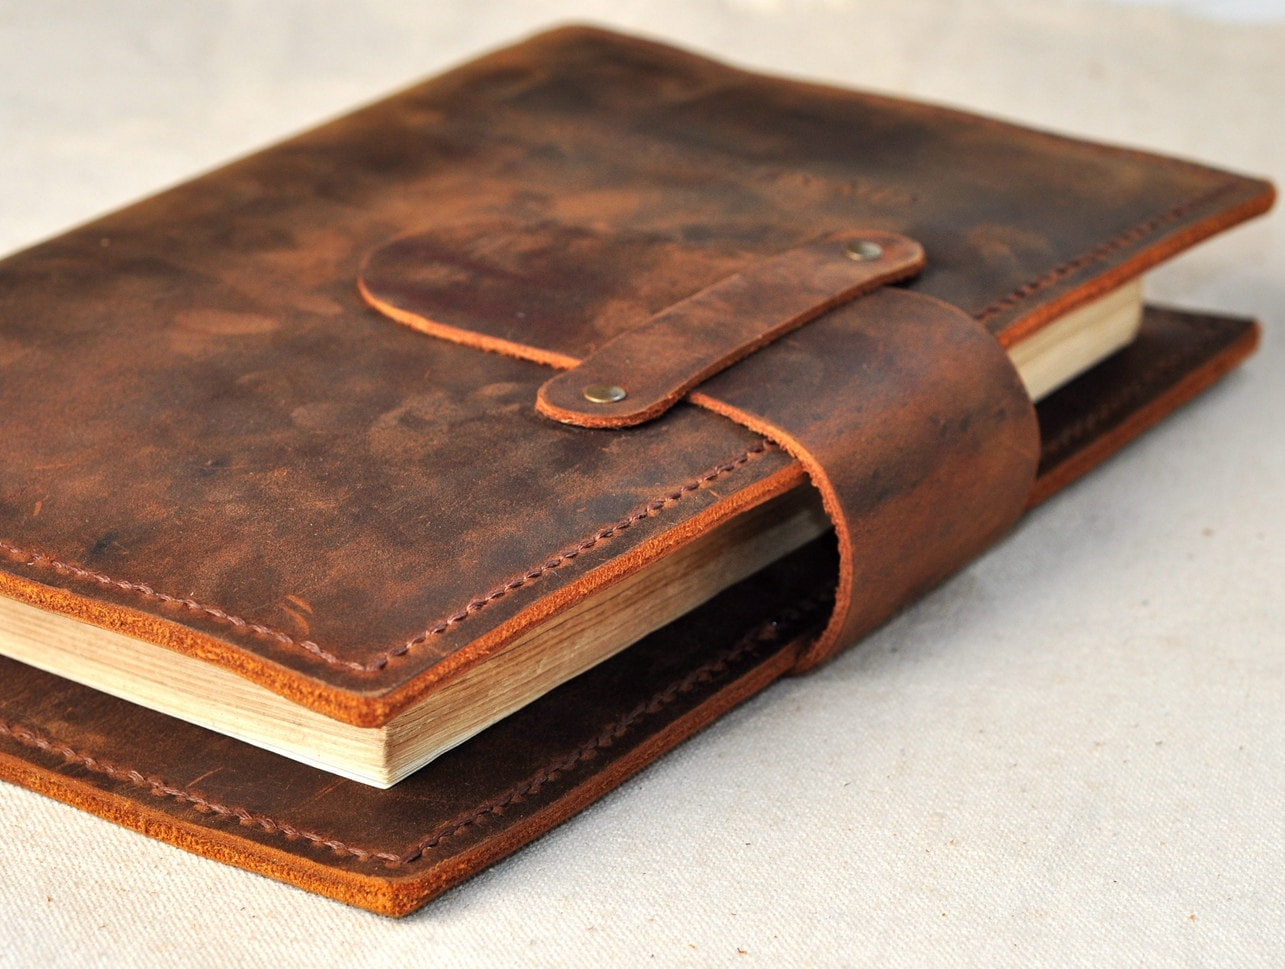 Paper Book Cover Name : Handmade leather book coverunique office supplies